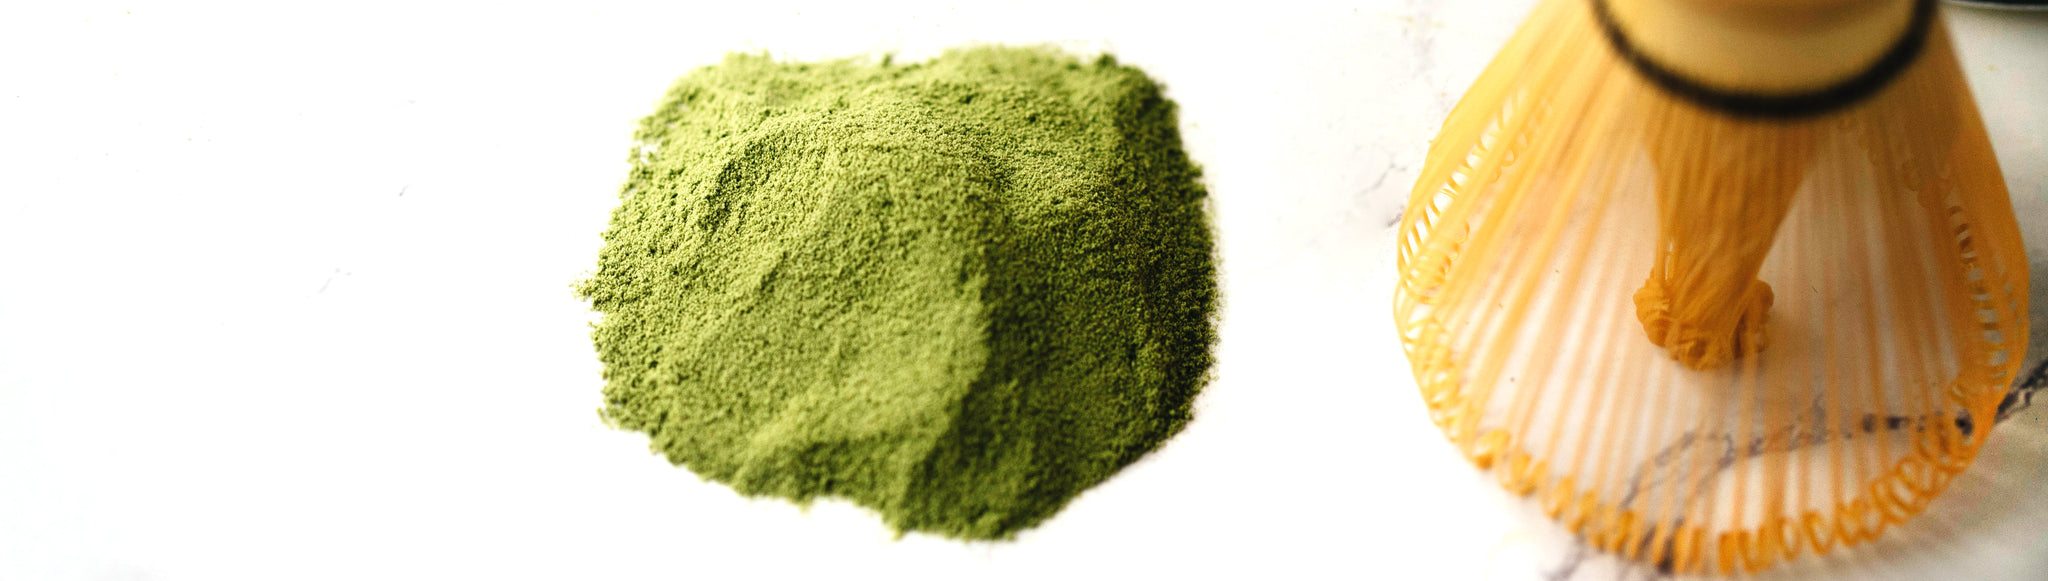 Matcha powder amazing cheap